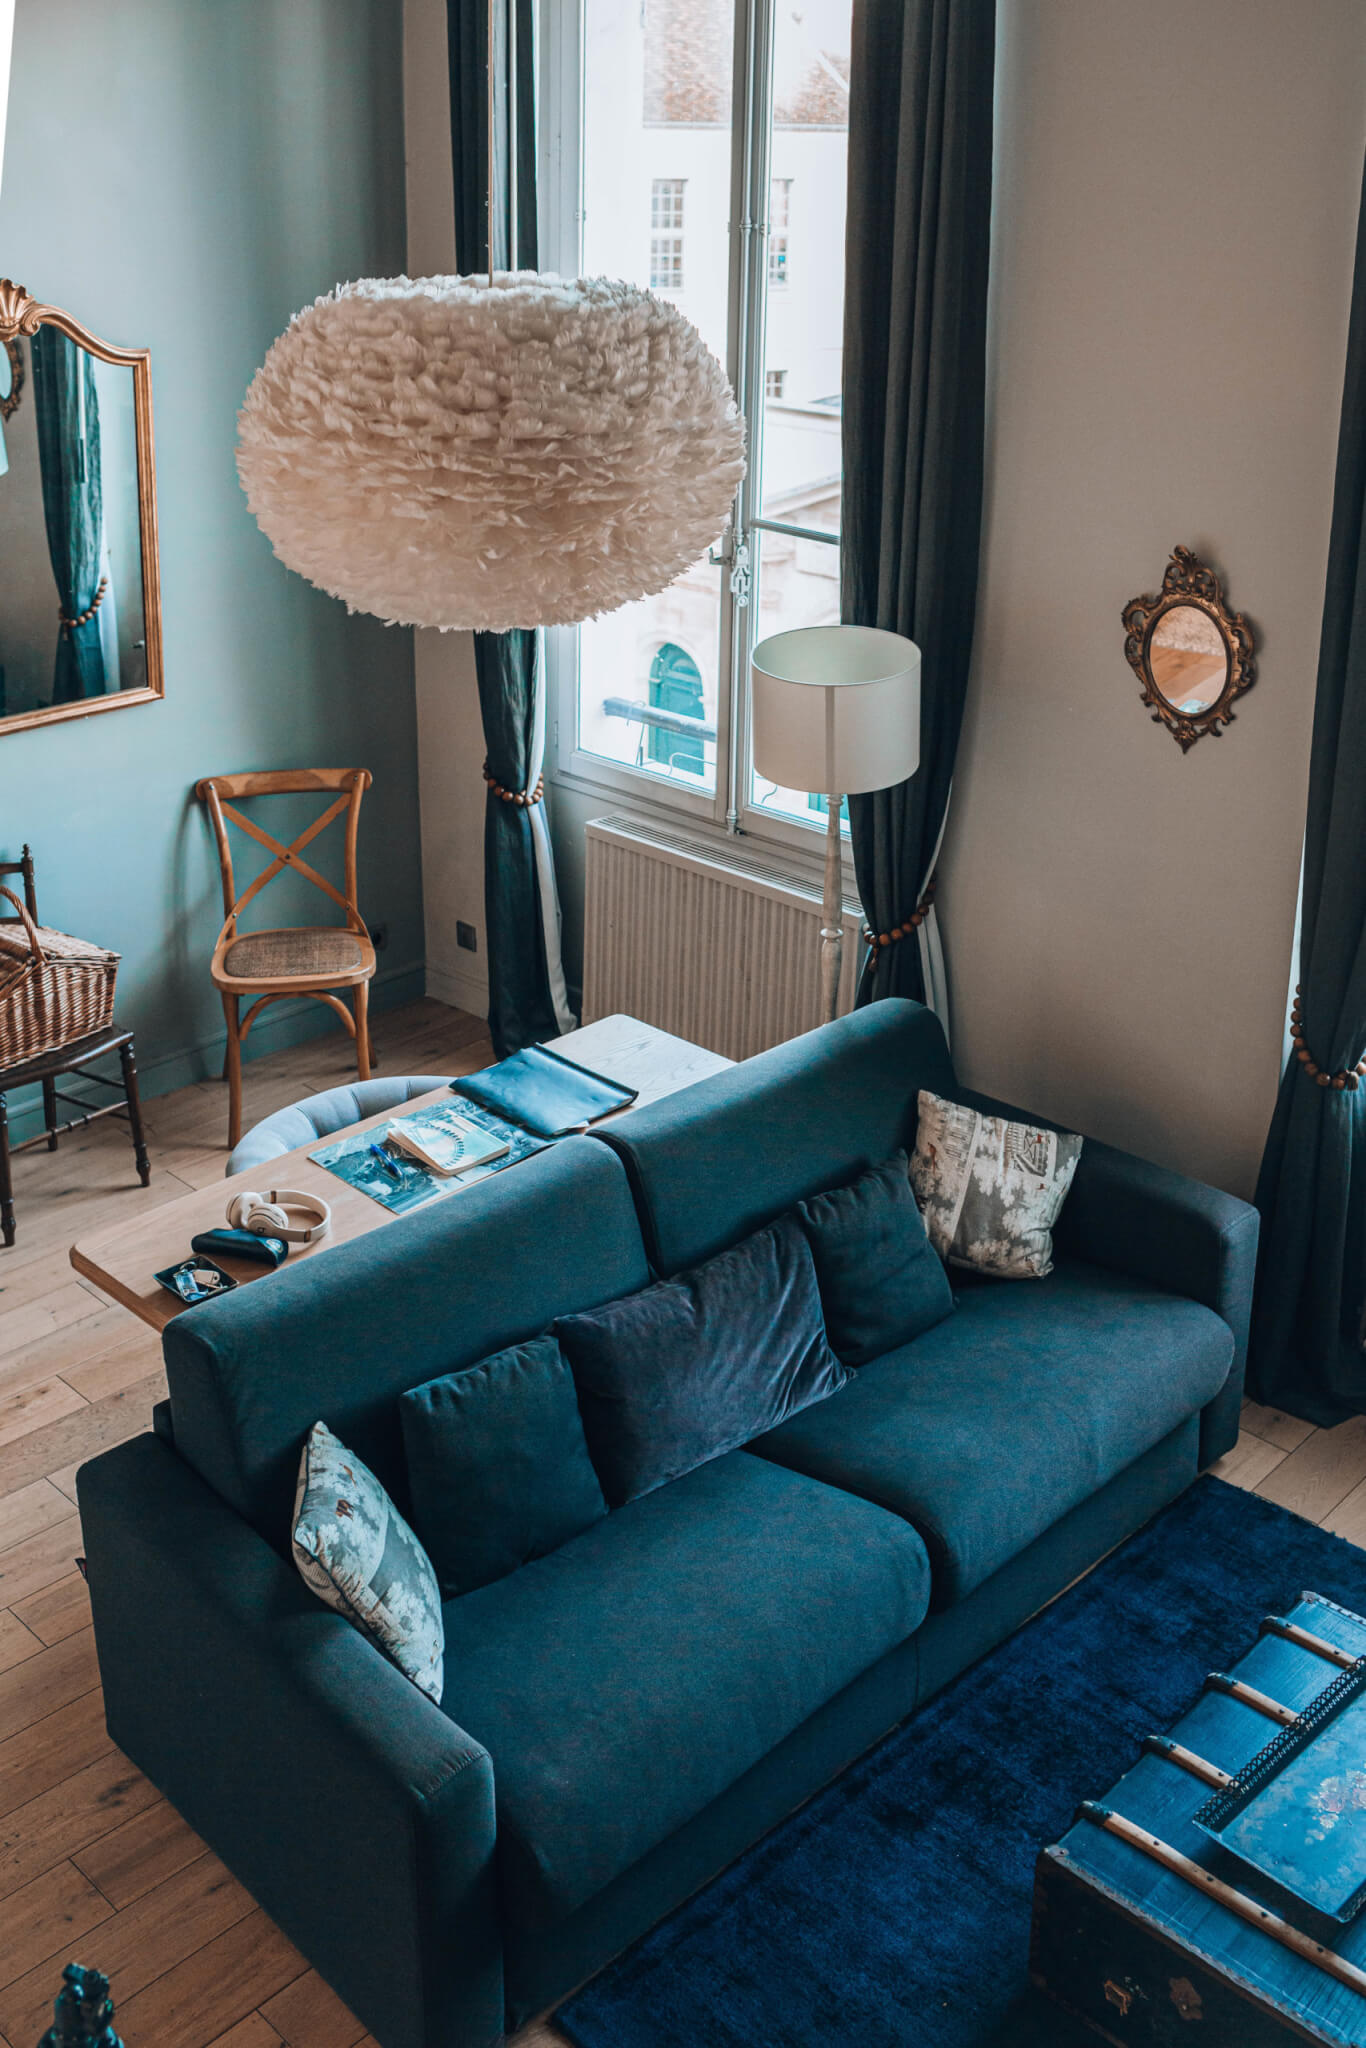 I stayed in an apartment in Paris via Cobblestone properties